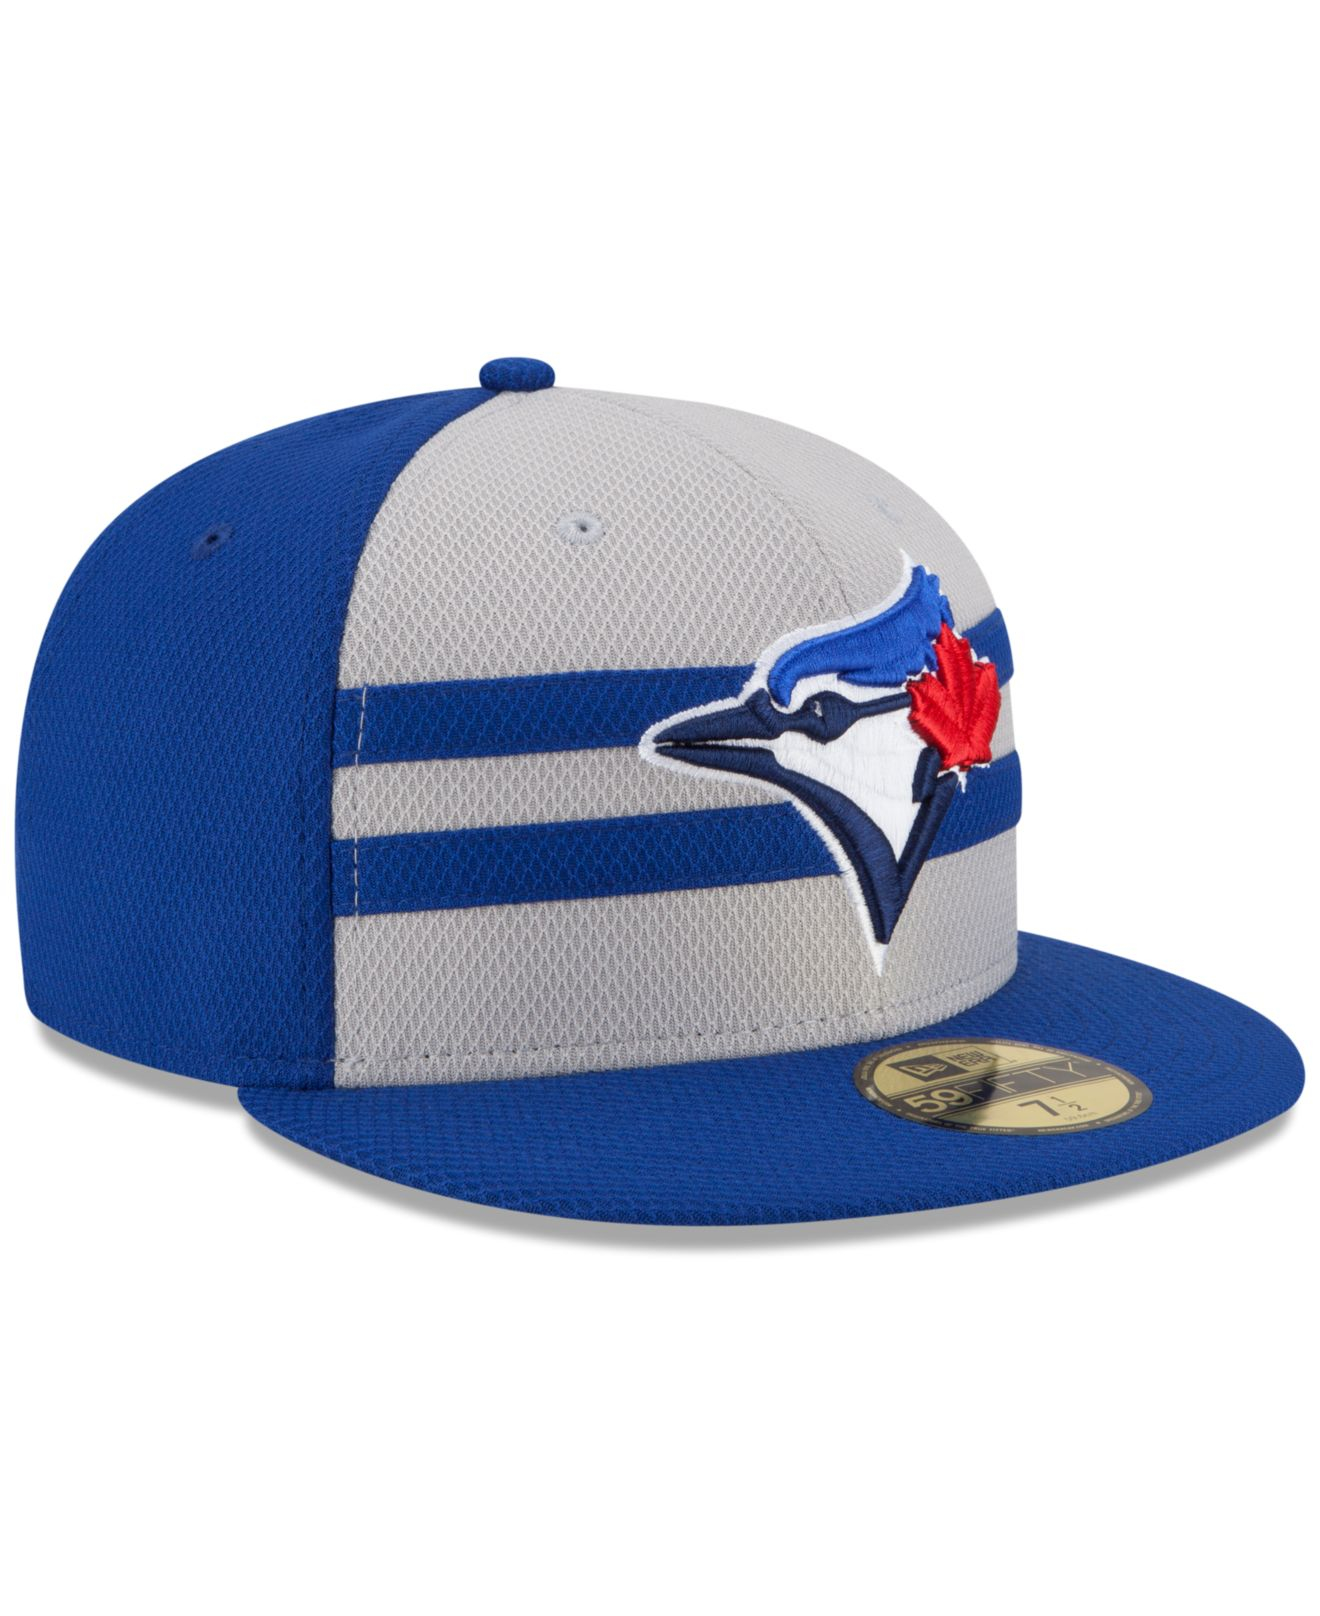 brand new bdb2a f45fb shop new york mets new era 2018 memorial day on field 59fifty fitted hat  black 7f8df 1658e  denmark lyst ktz toronto blue jays 2015 all star game  59fifty ...